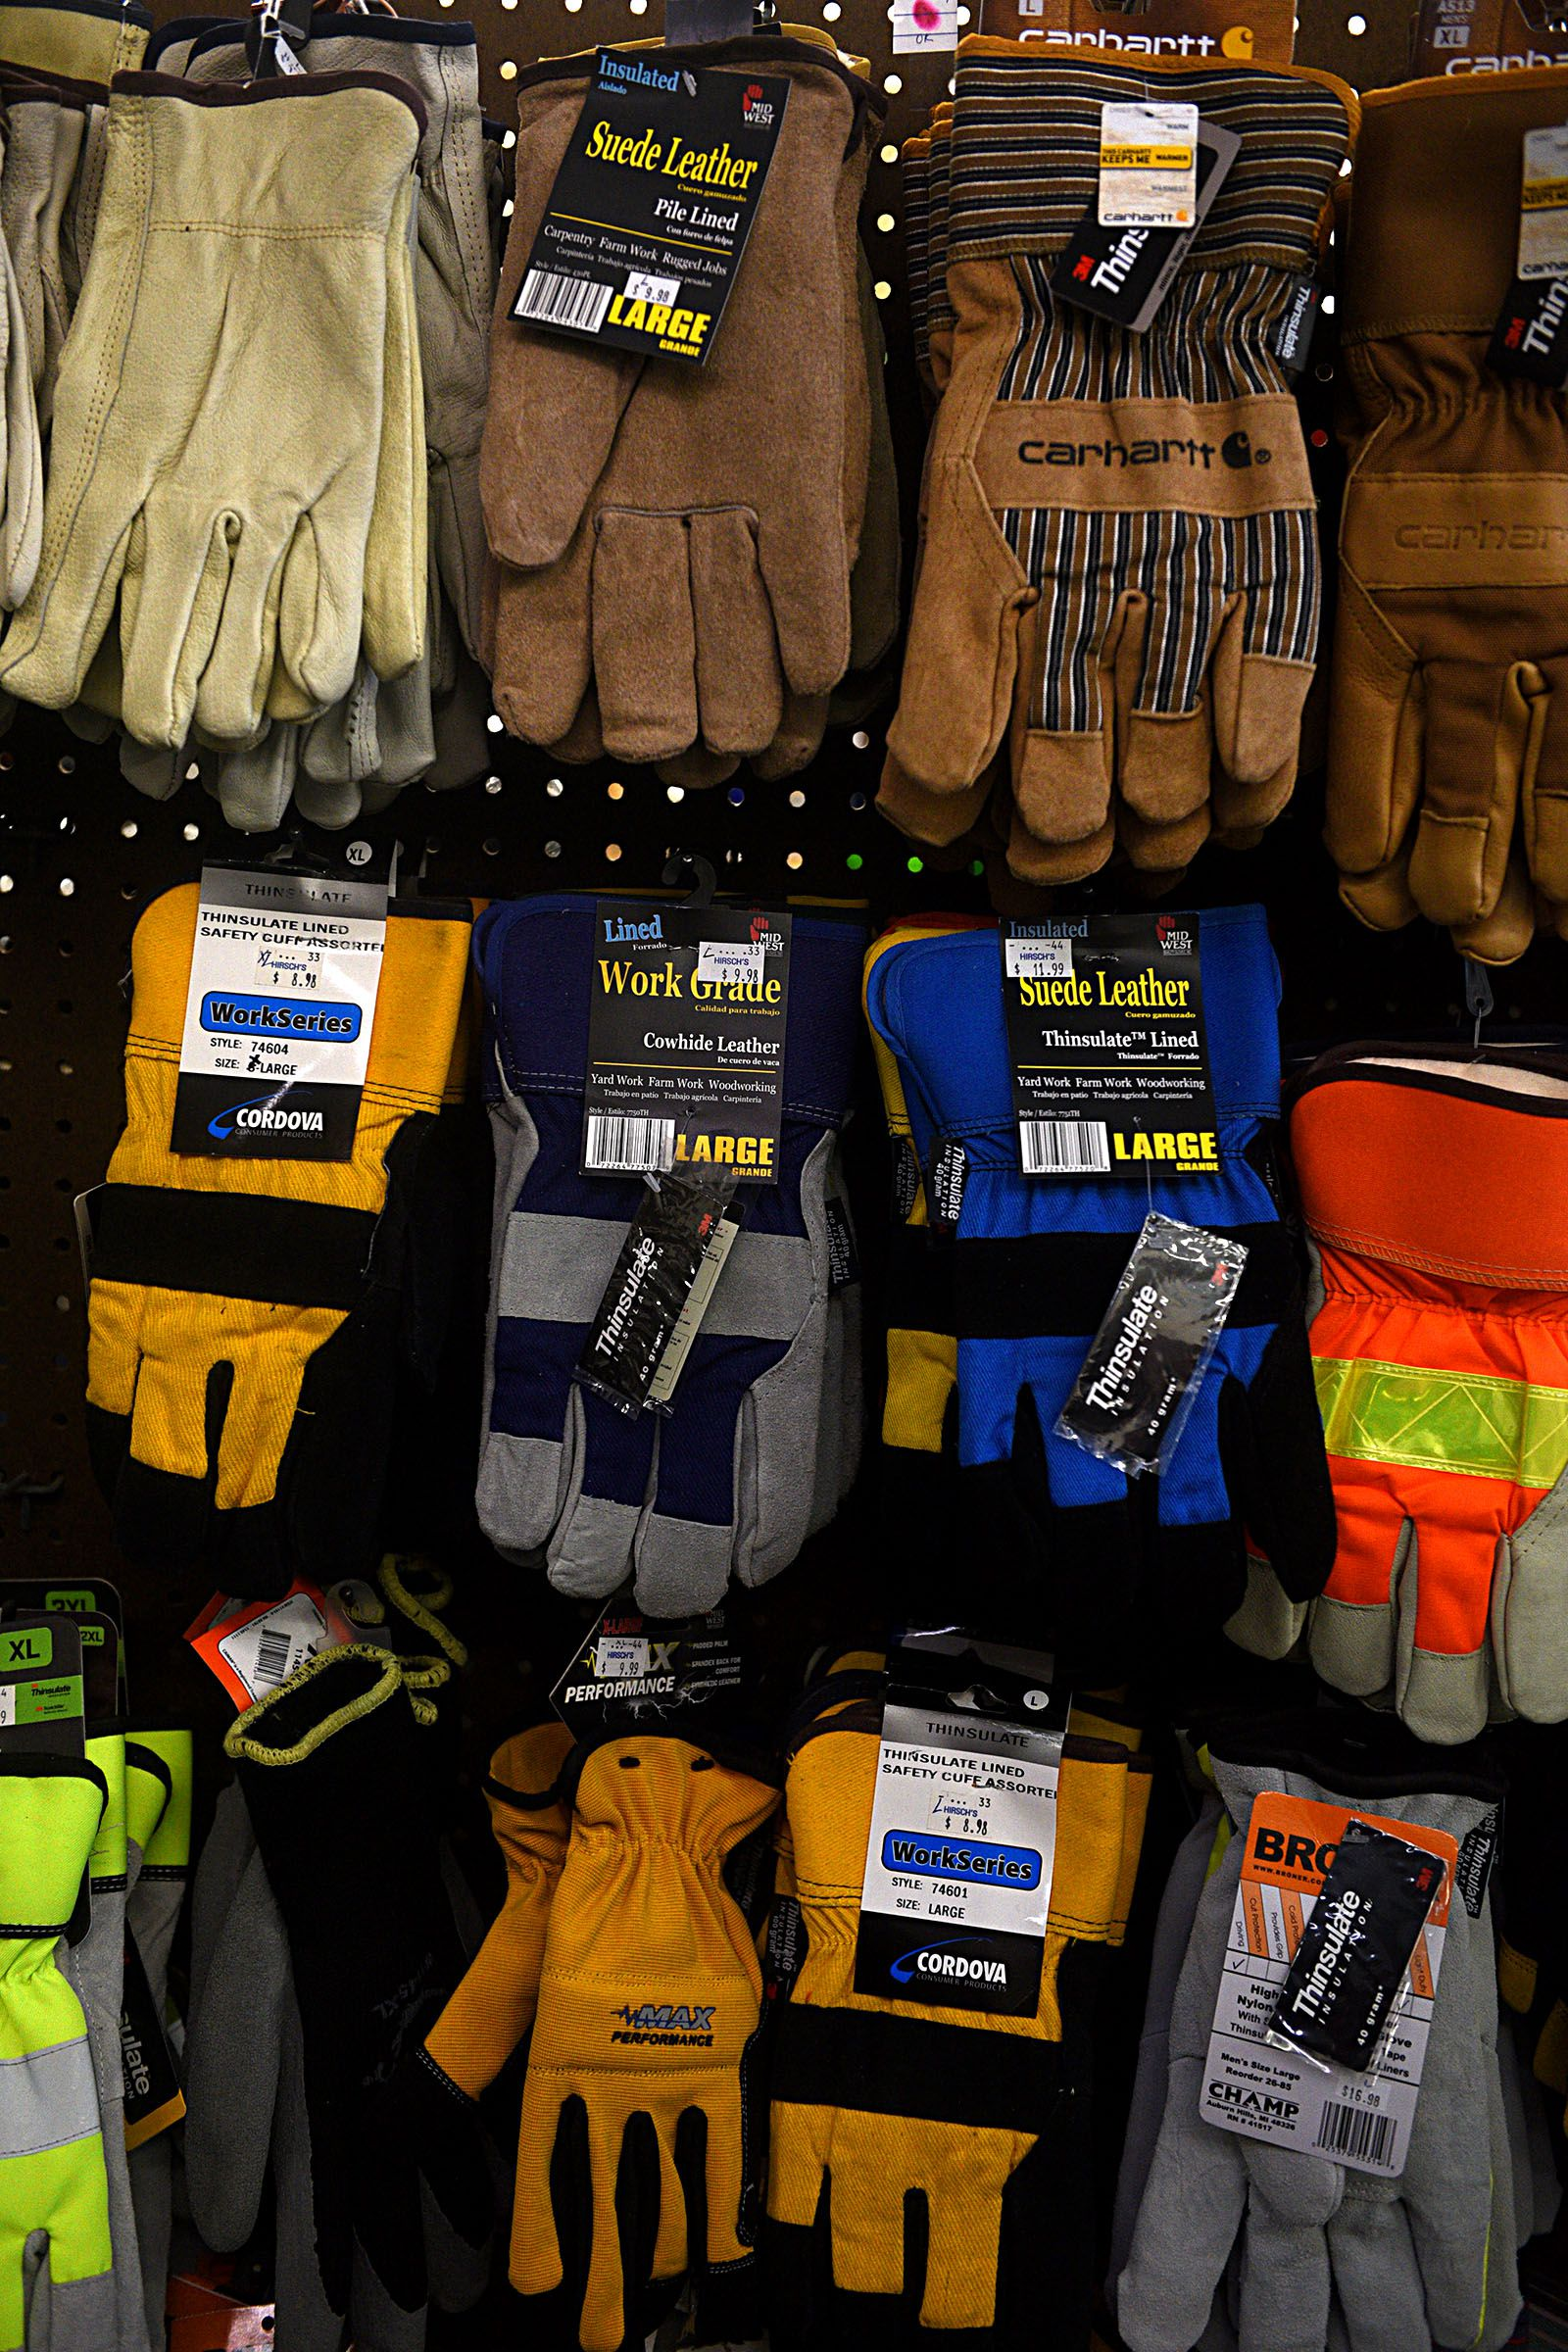 Work gloves for sale at Hirsch's Clothing in Lebanon, N H